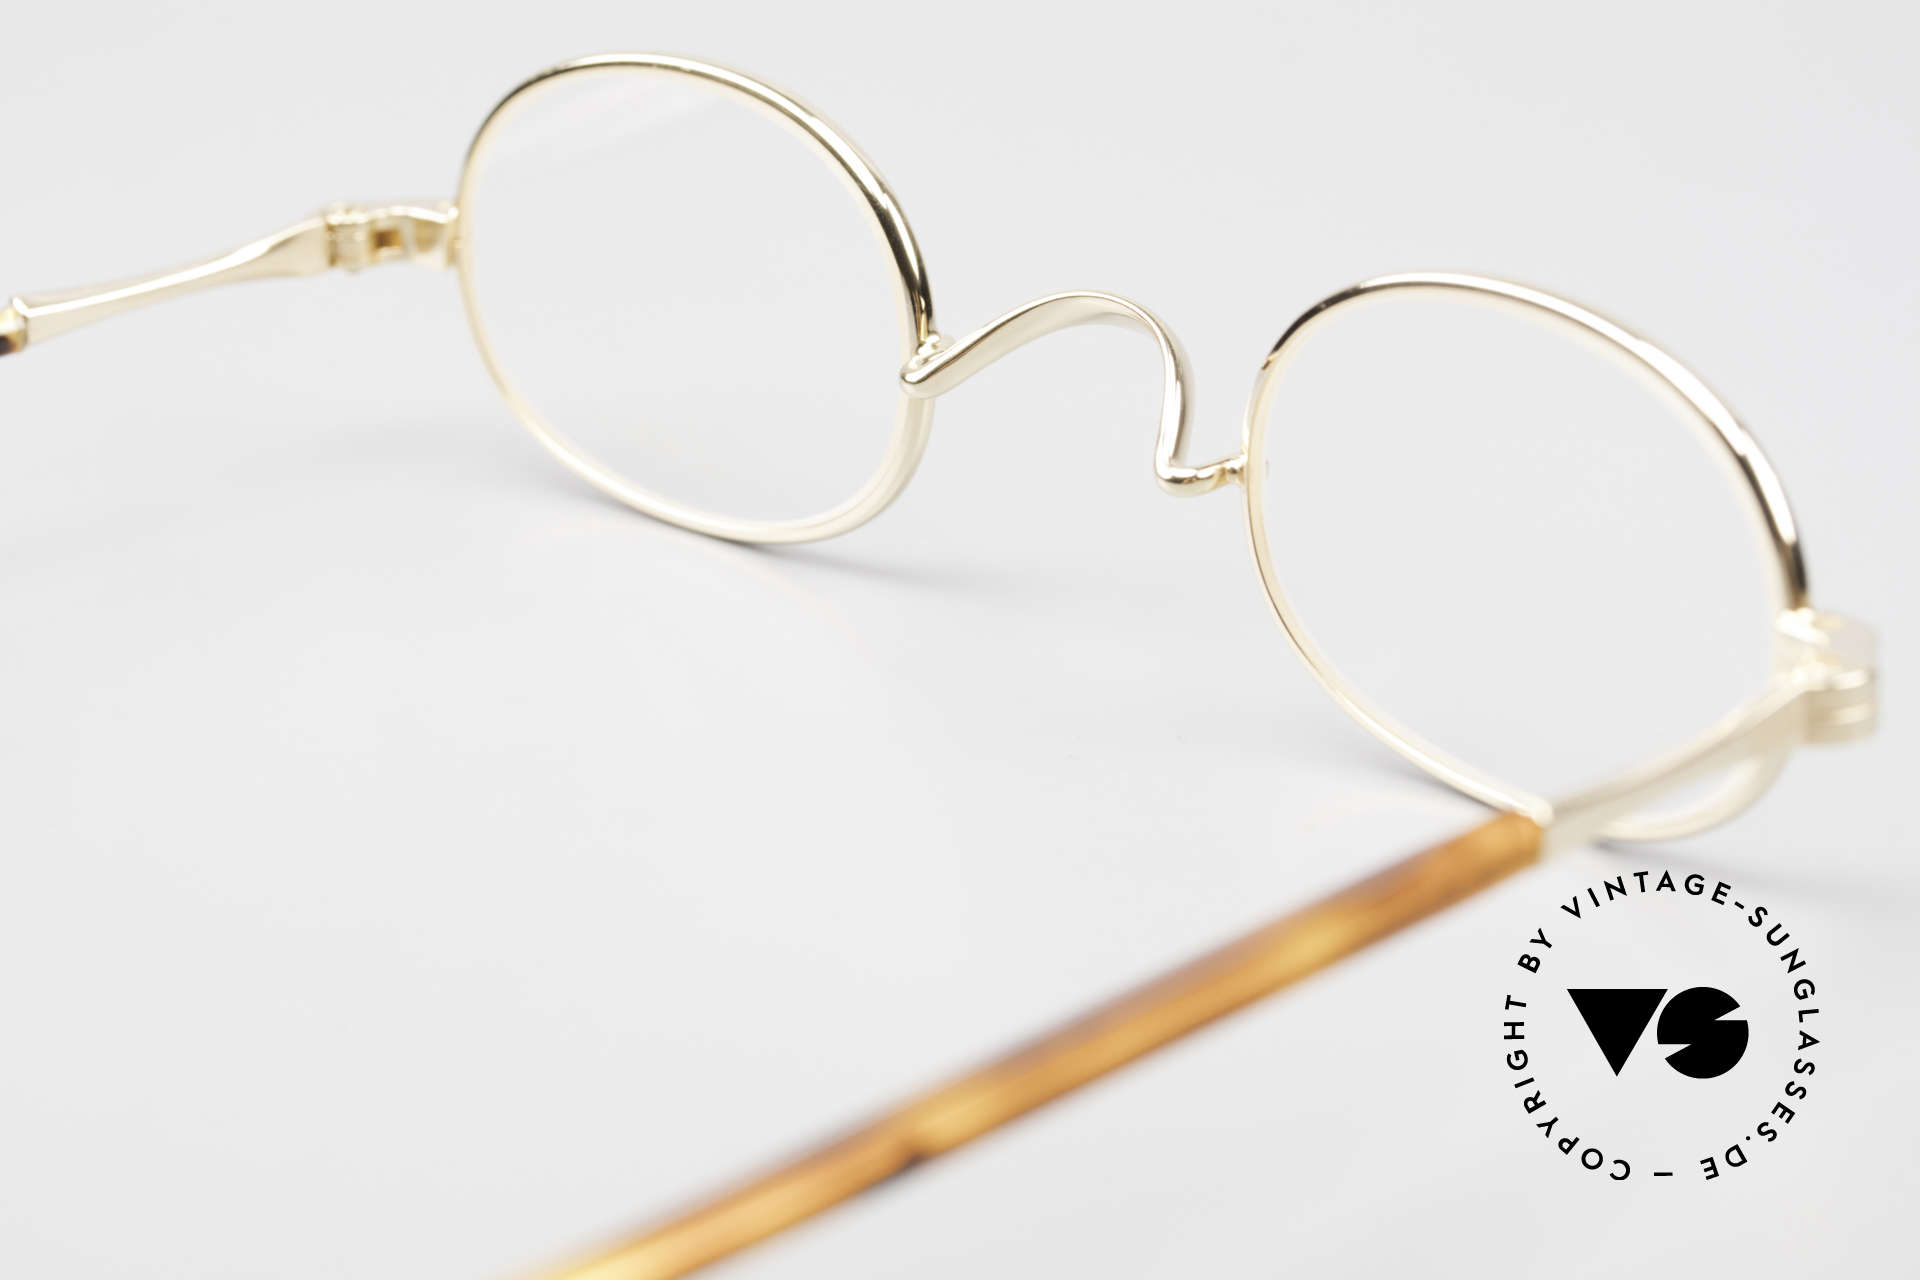 Lunor II A 08 Small Oval Glasses Gold Plated, Size: small, Made for Men and Women